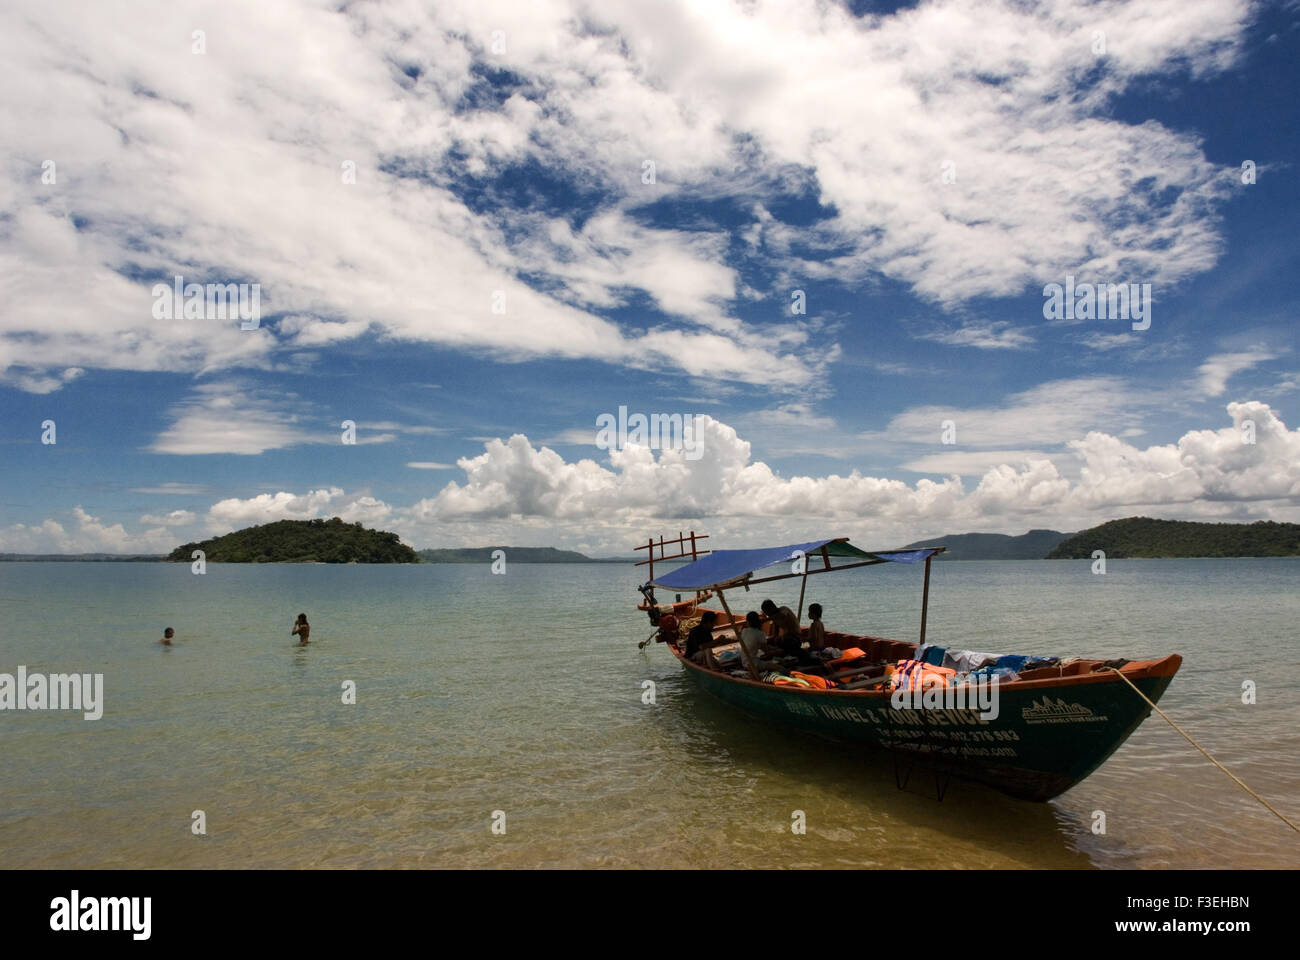 Boat for snorkeling on the island of Koh Russei. Koh Russei or Bamboo Island is one of a group of small islands - Stock Image